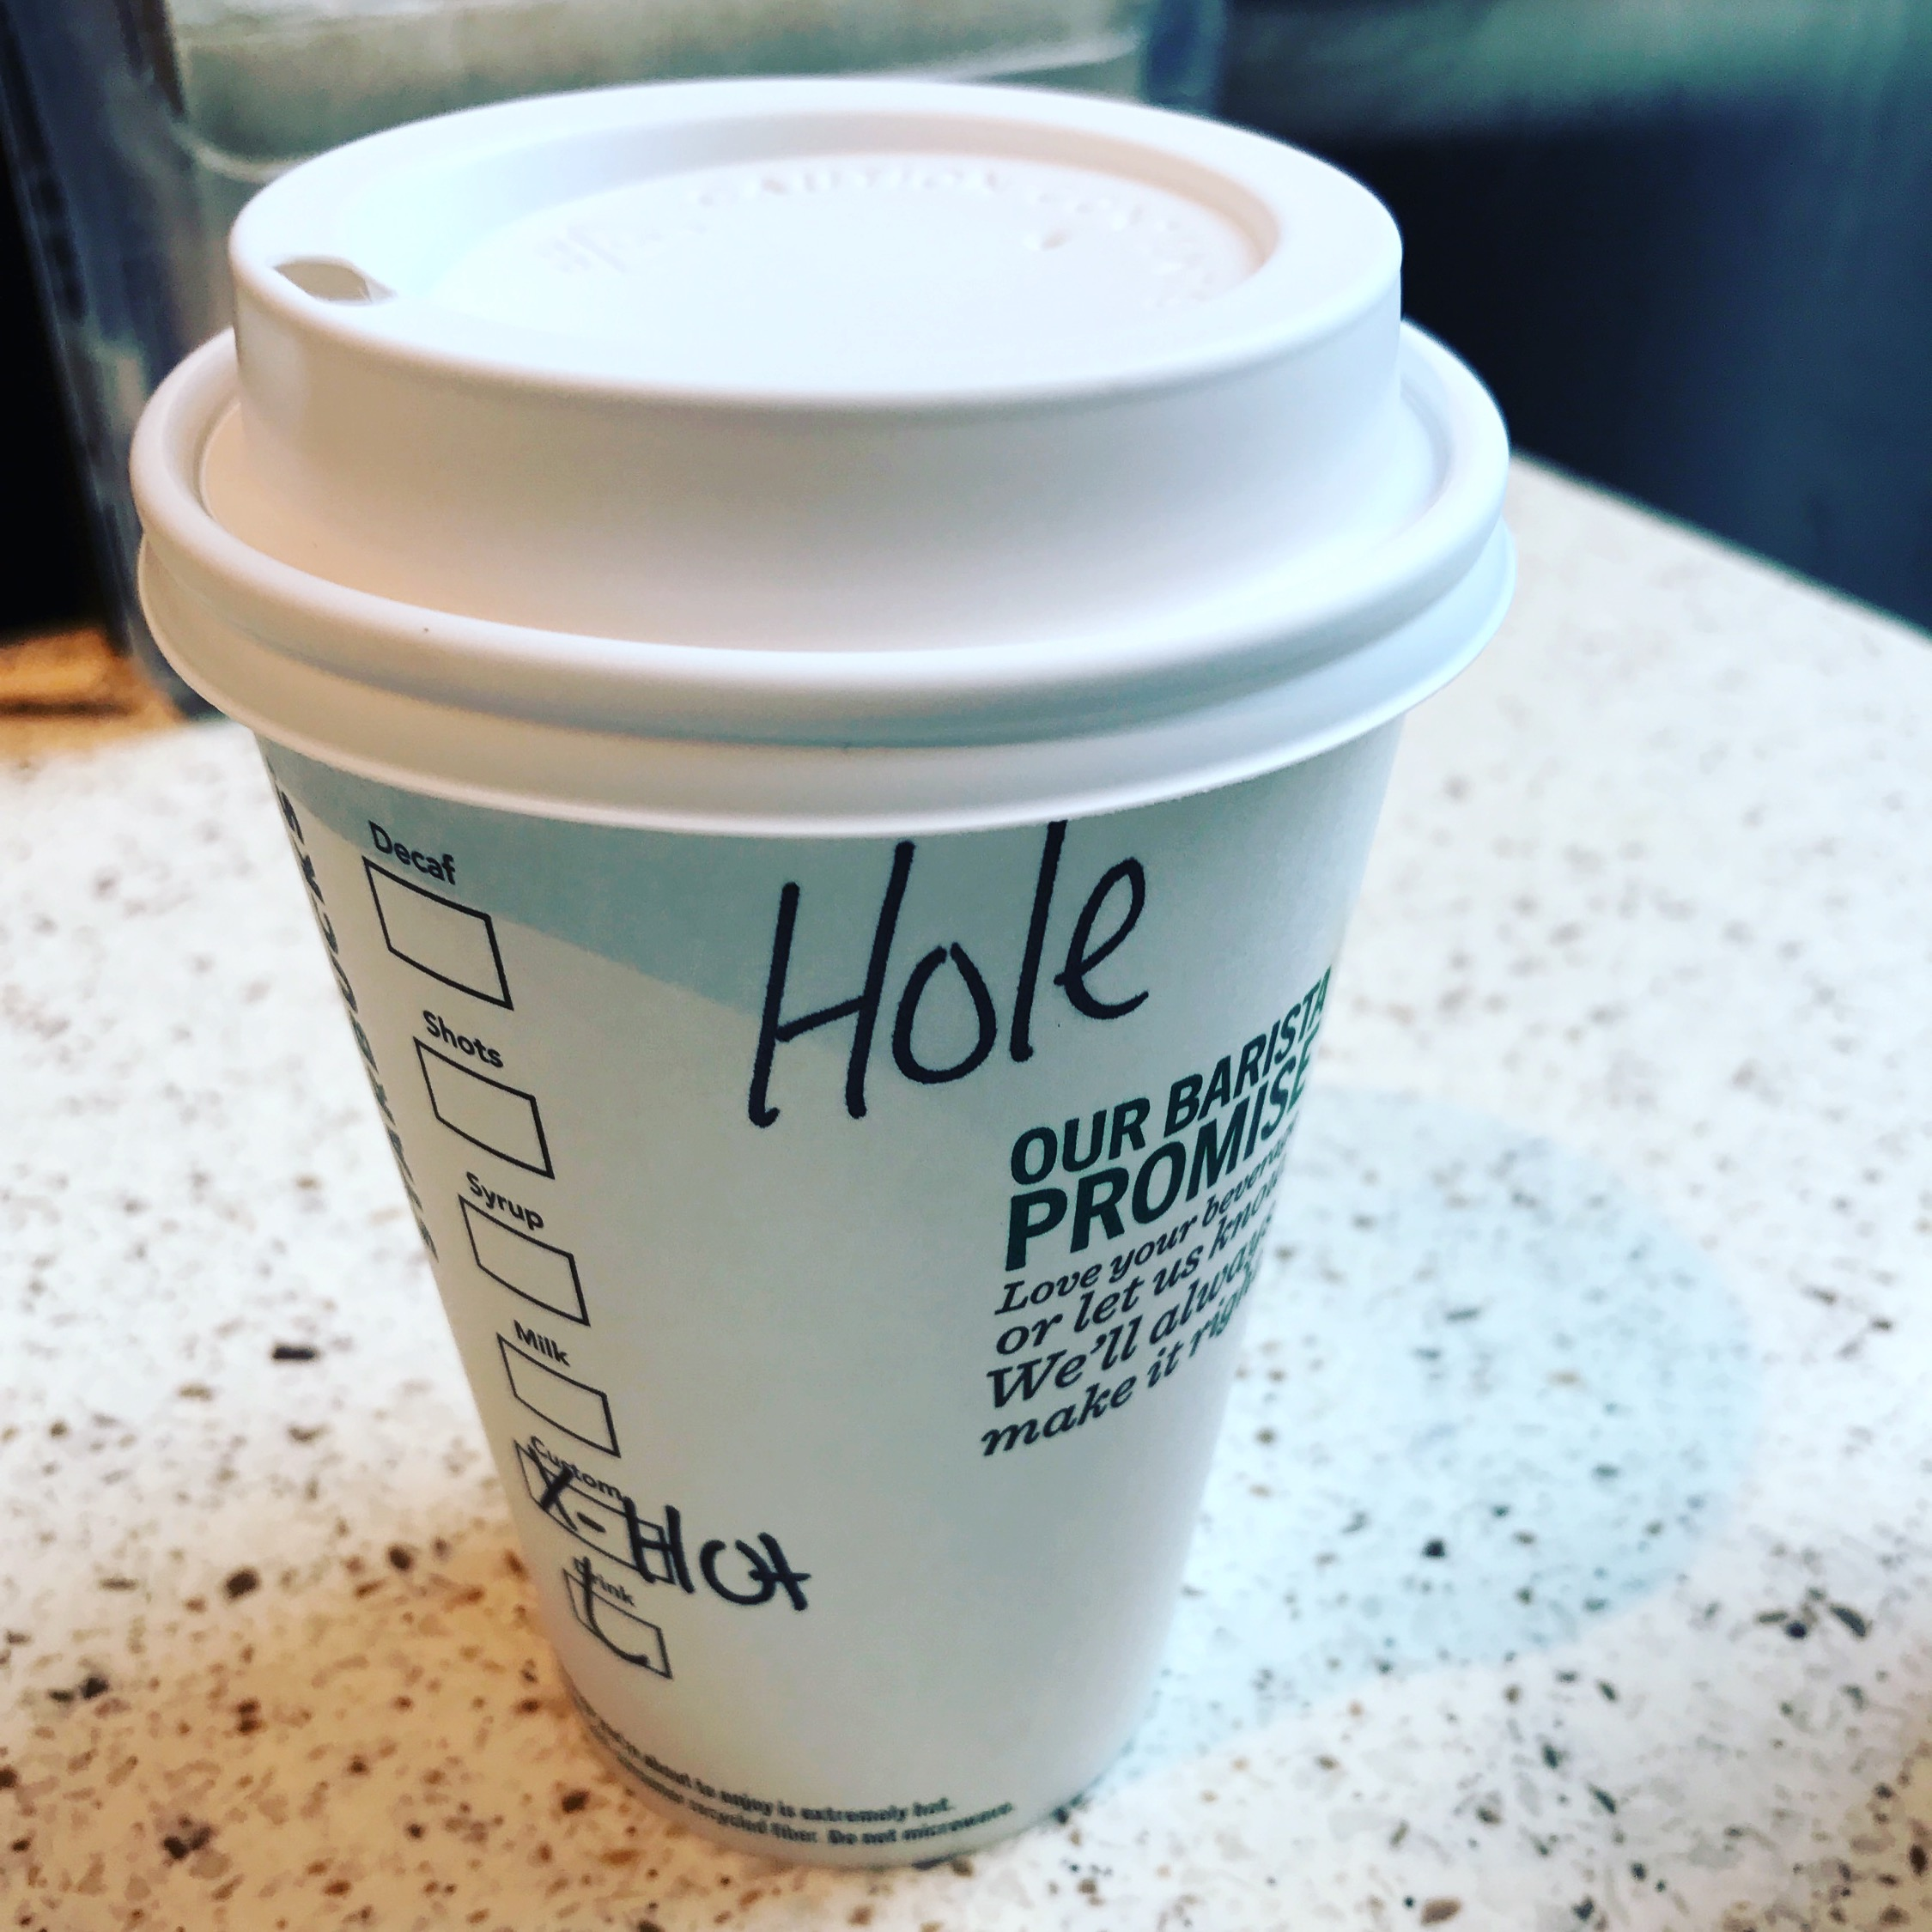 One time my friend Holly got her coffee like this. Totally off topic, but super funny.